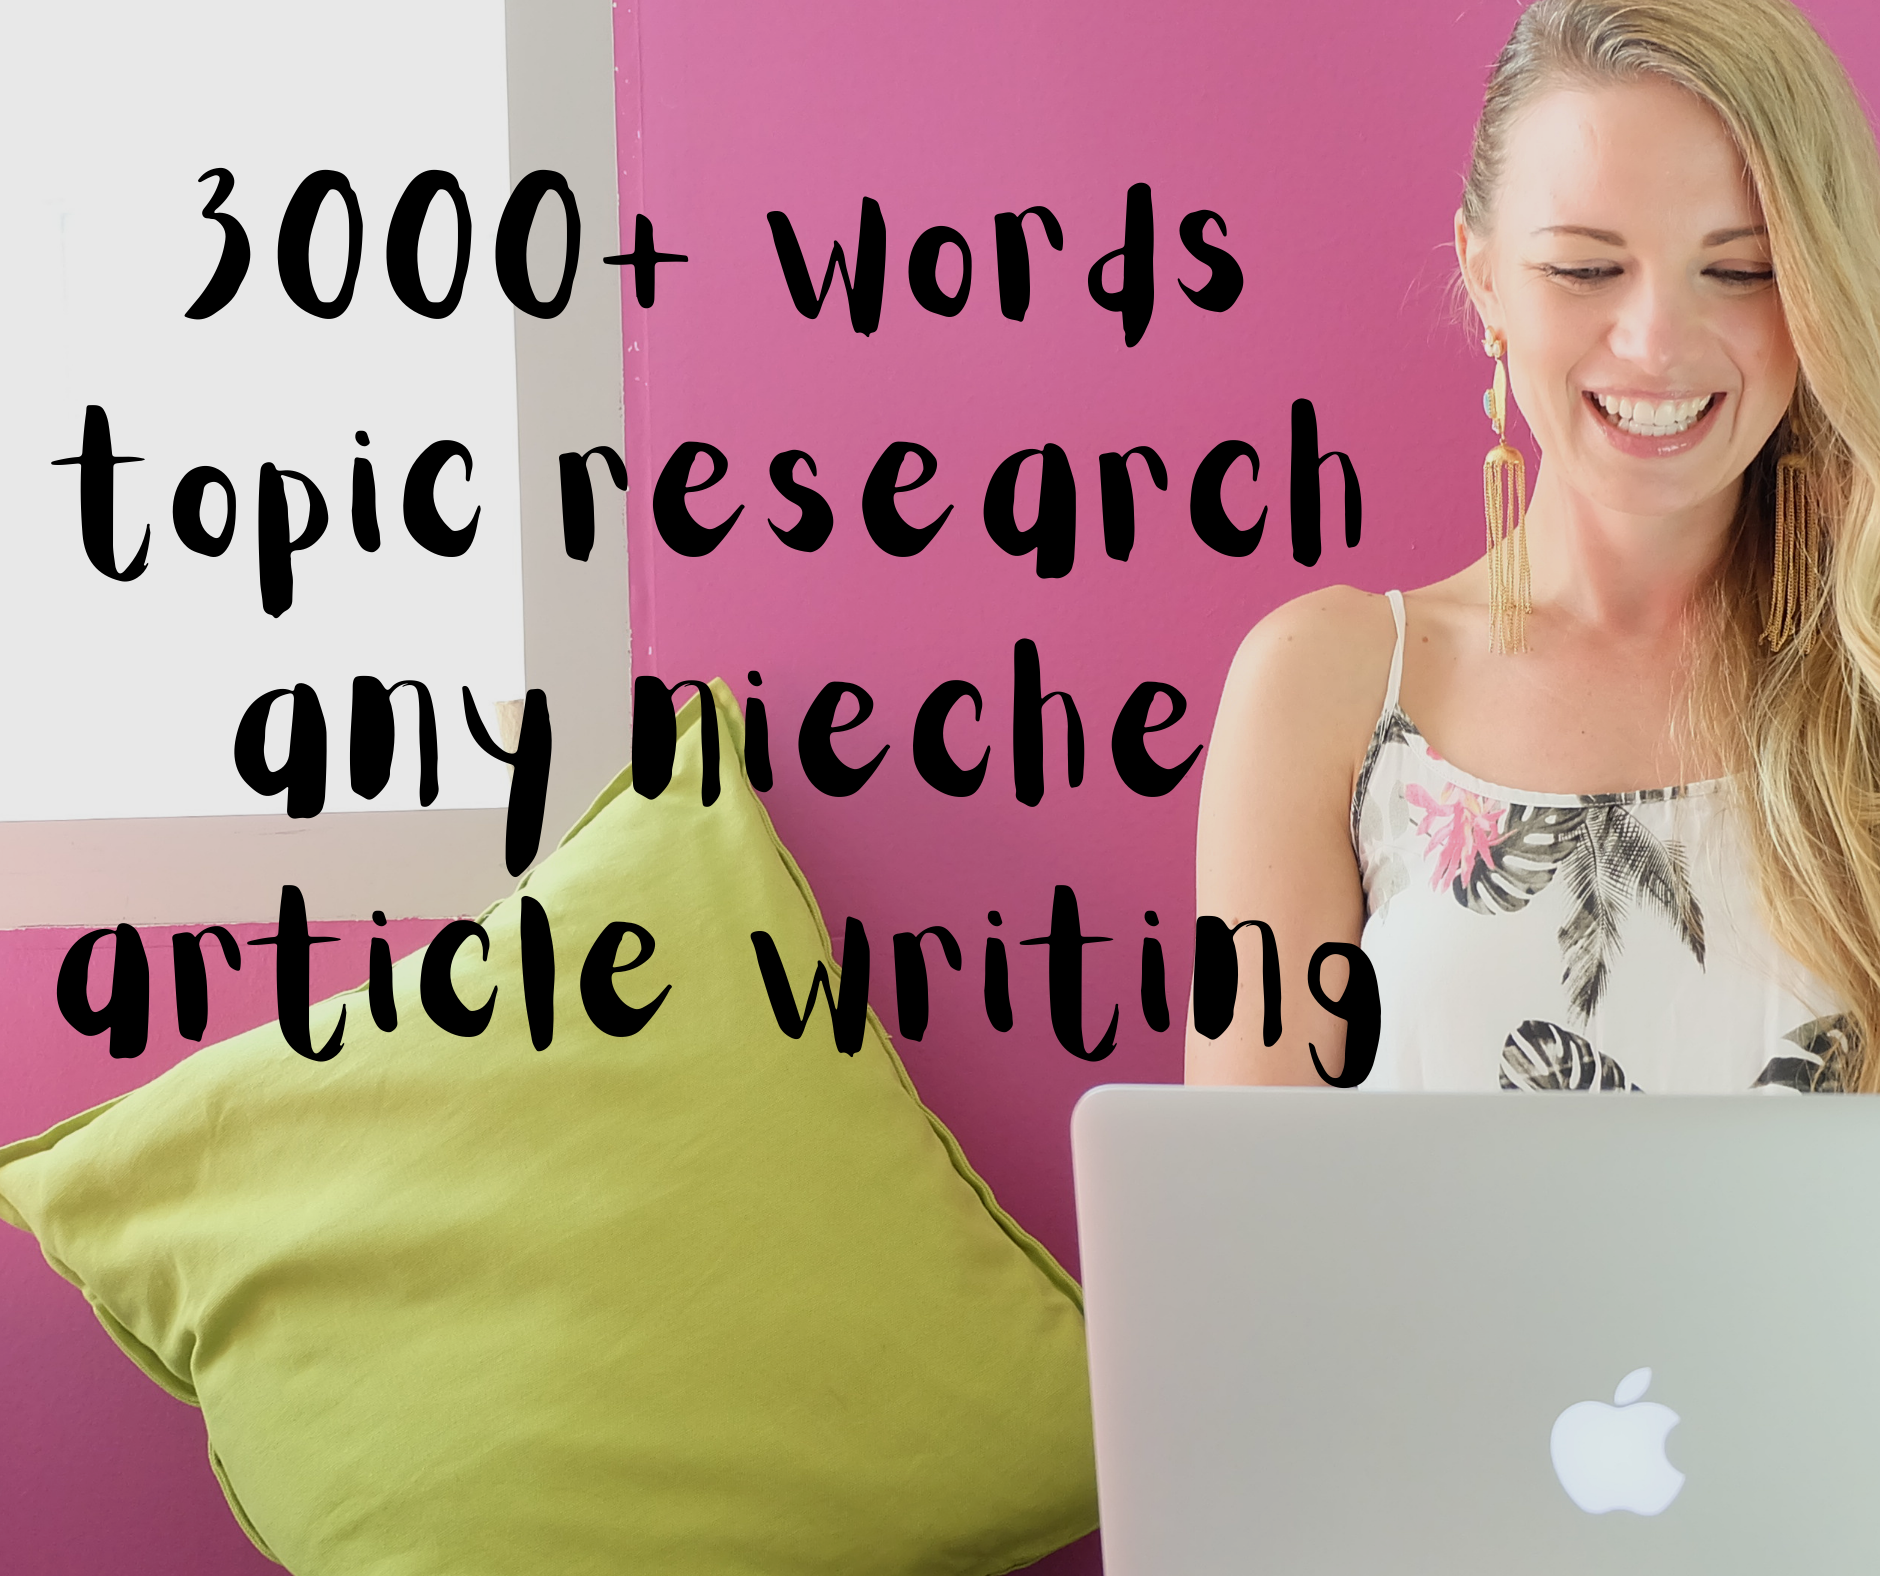 I WILL WRITE AN ARTICLE WITH 3000+ words